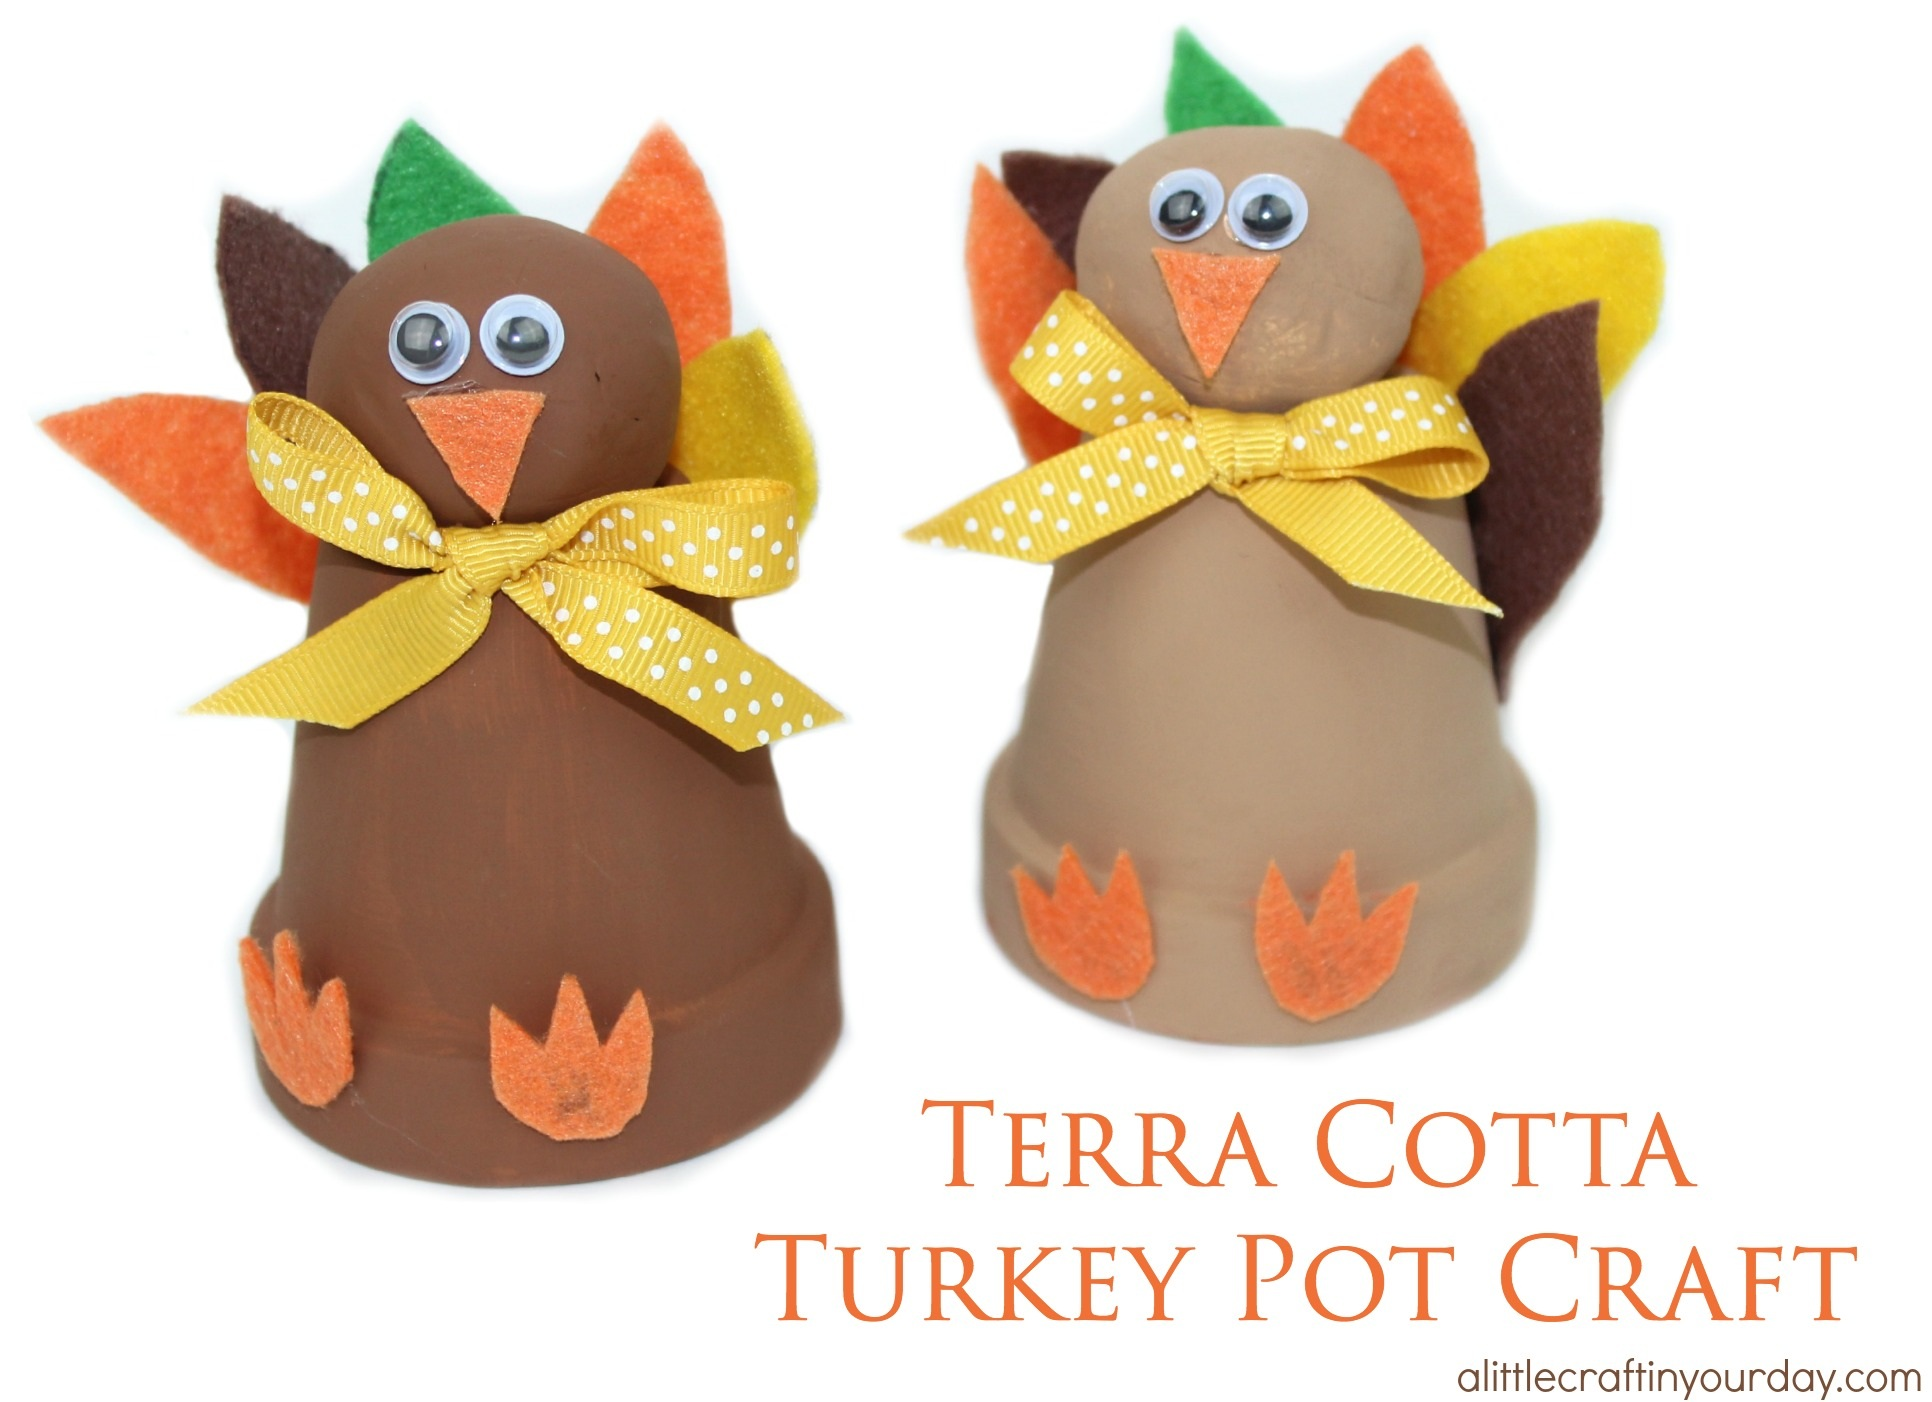 Terra Cotta Turkey Pot Craft